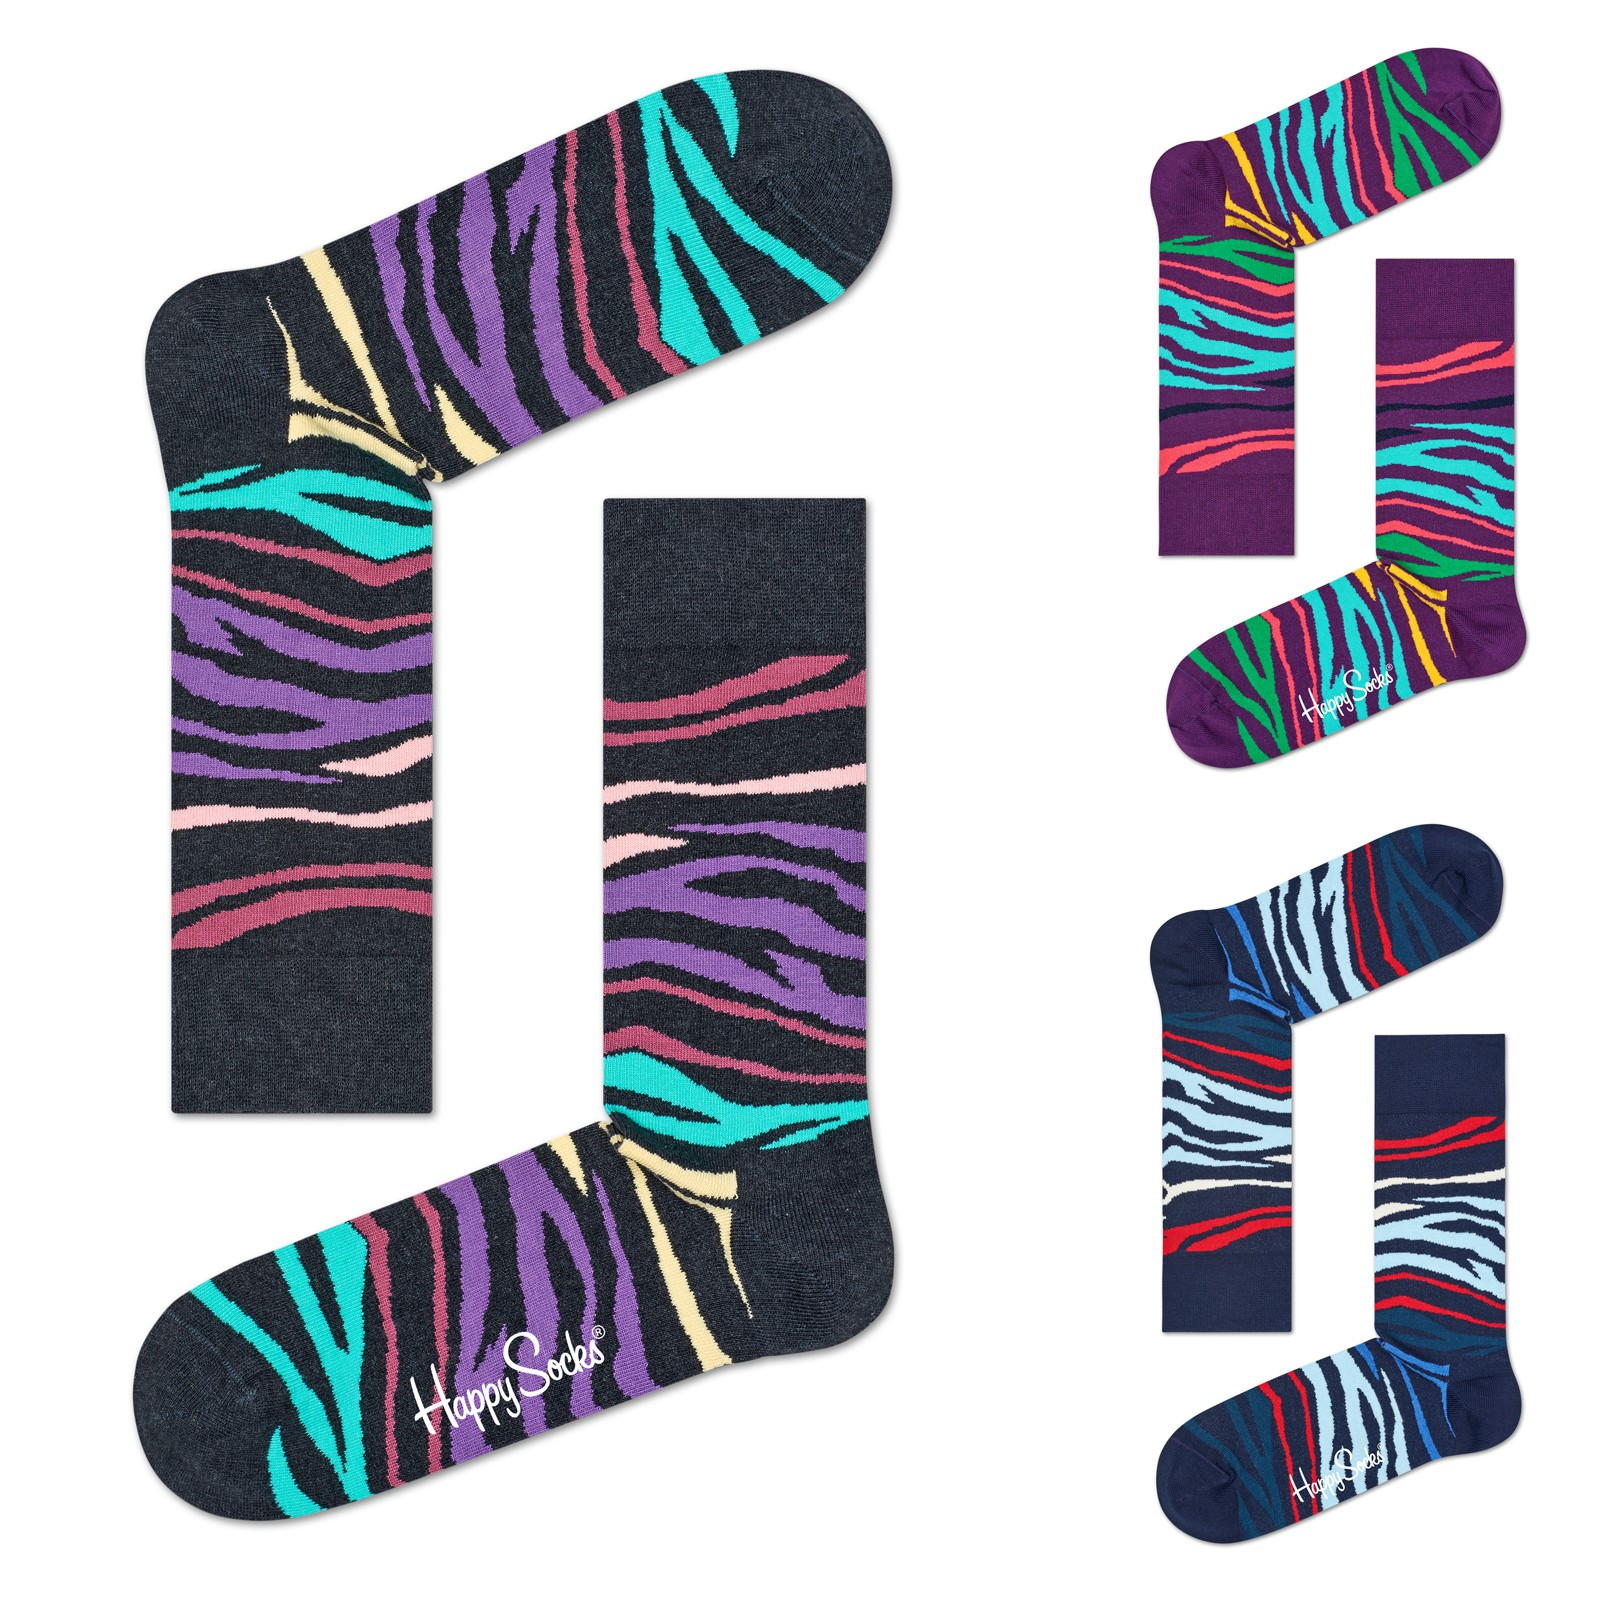 Happy Socks Unisex Socken Multi Zebra MZE01 36/40 41/46 in navy vergrößern